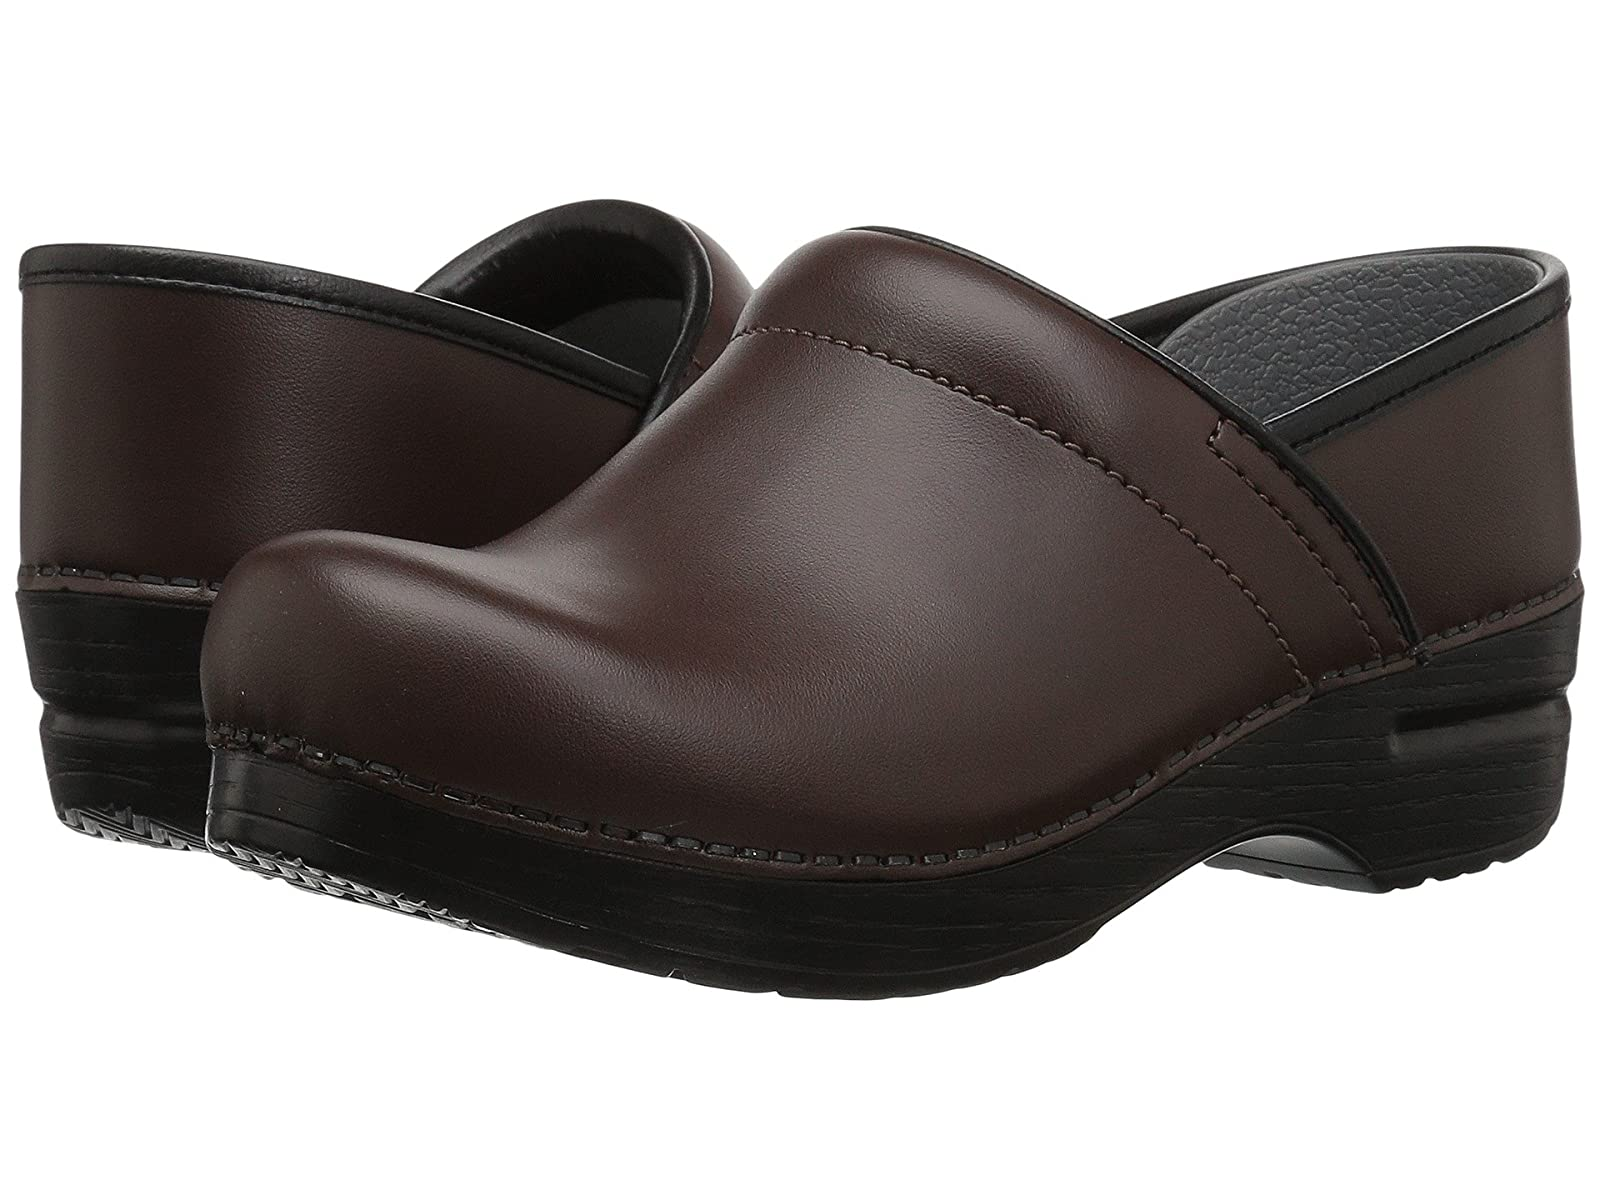 Dansko Professional LeatherCheap and distinctive eye-catching shoes